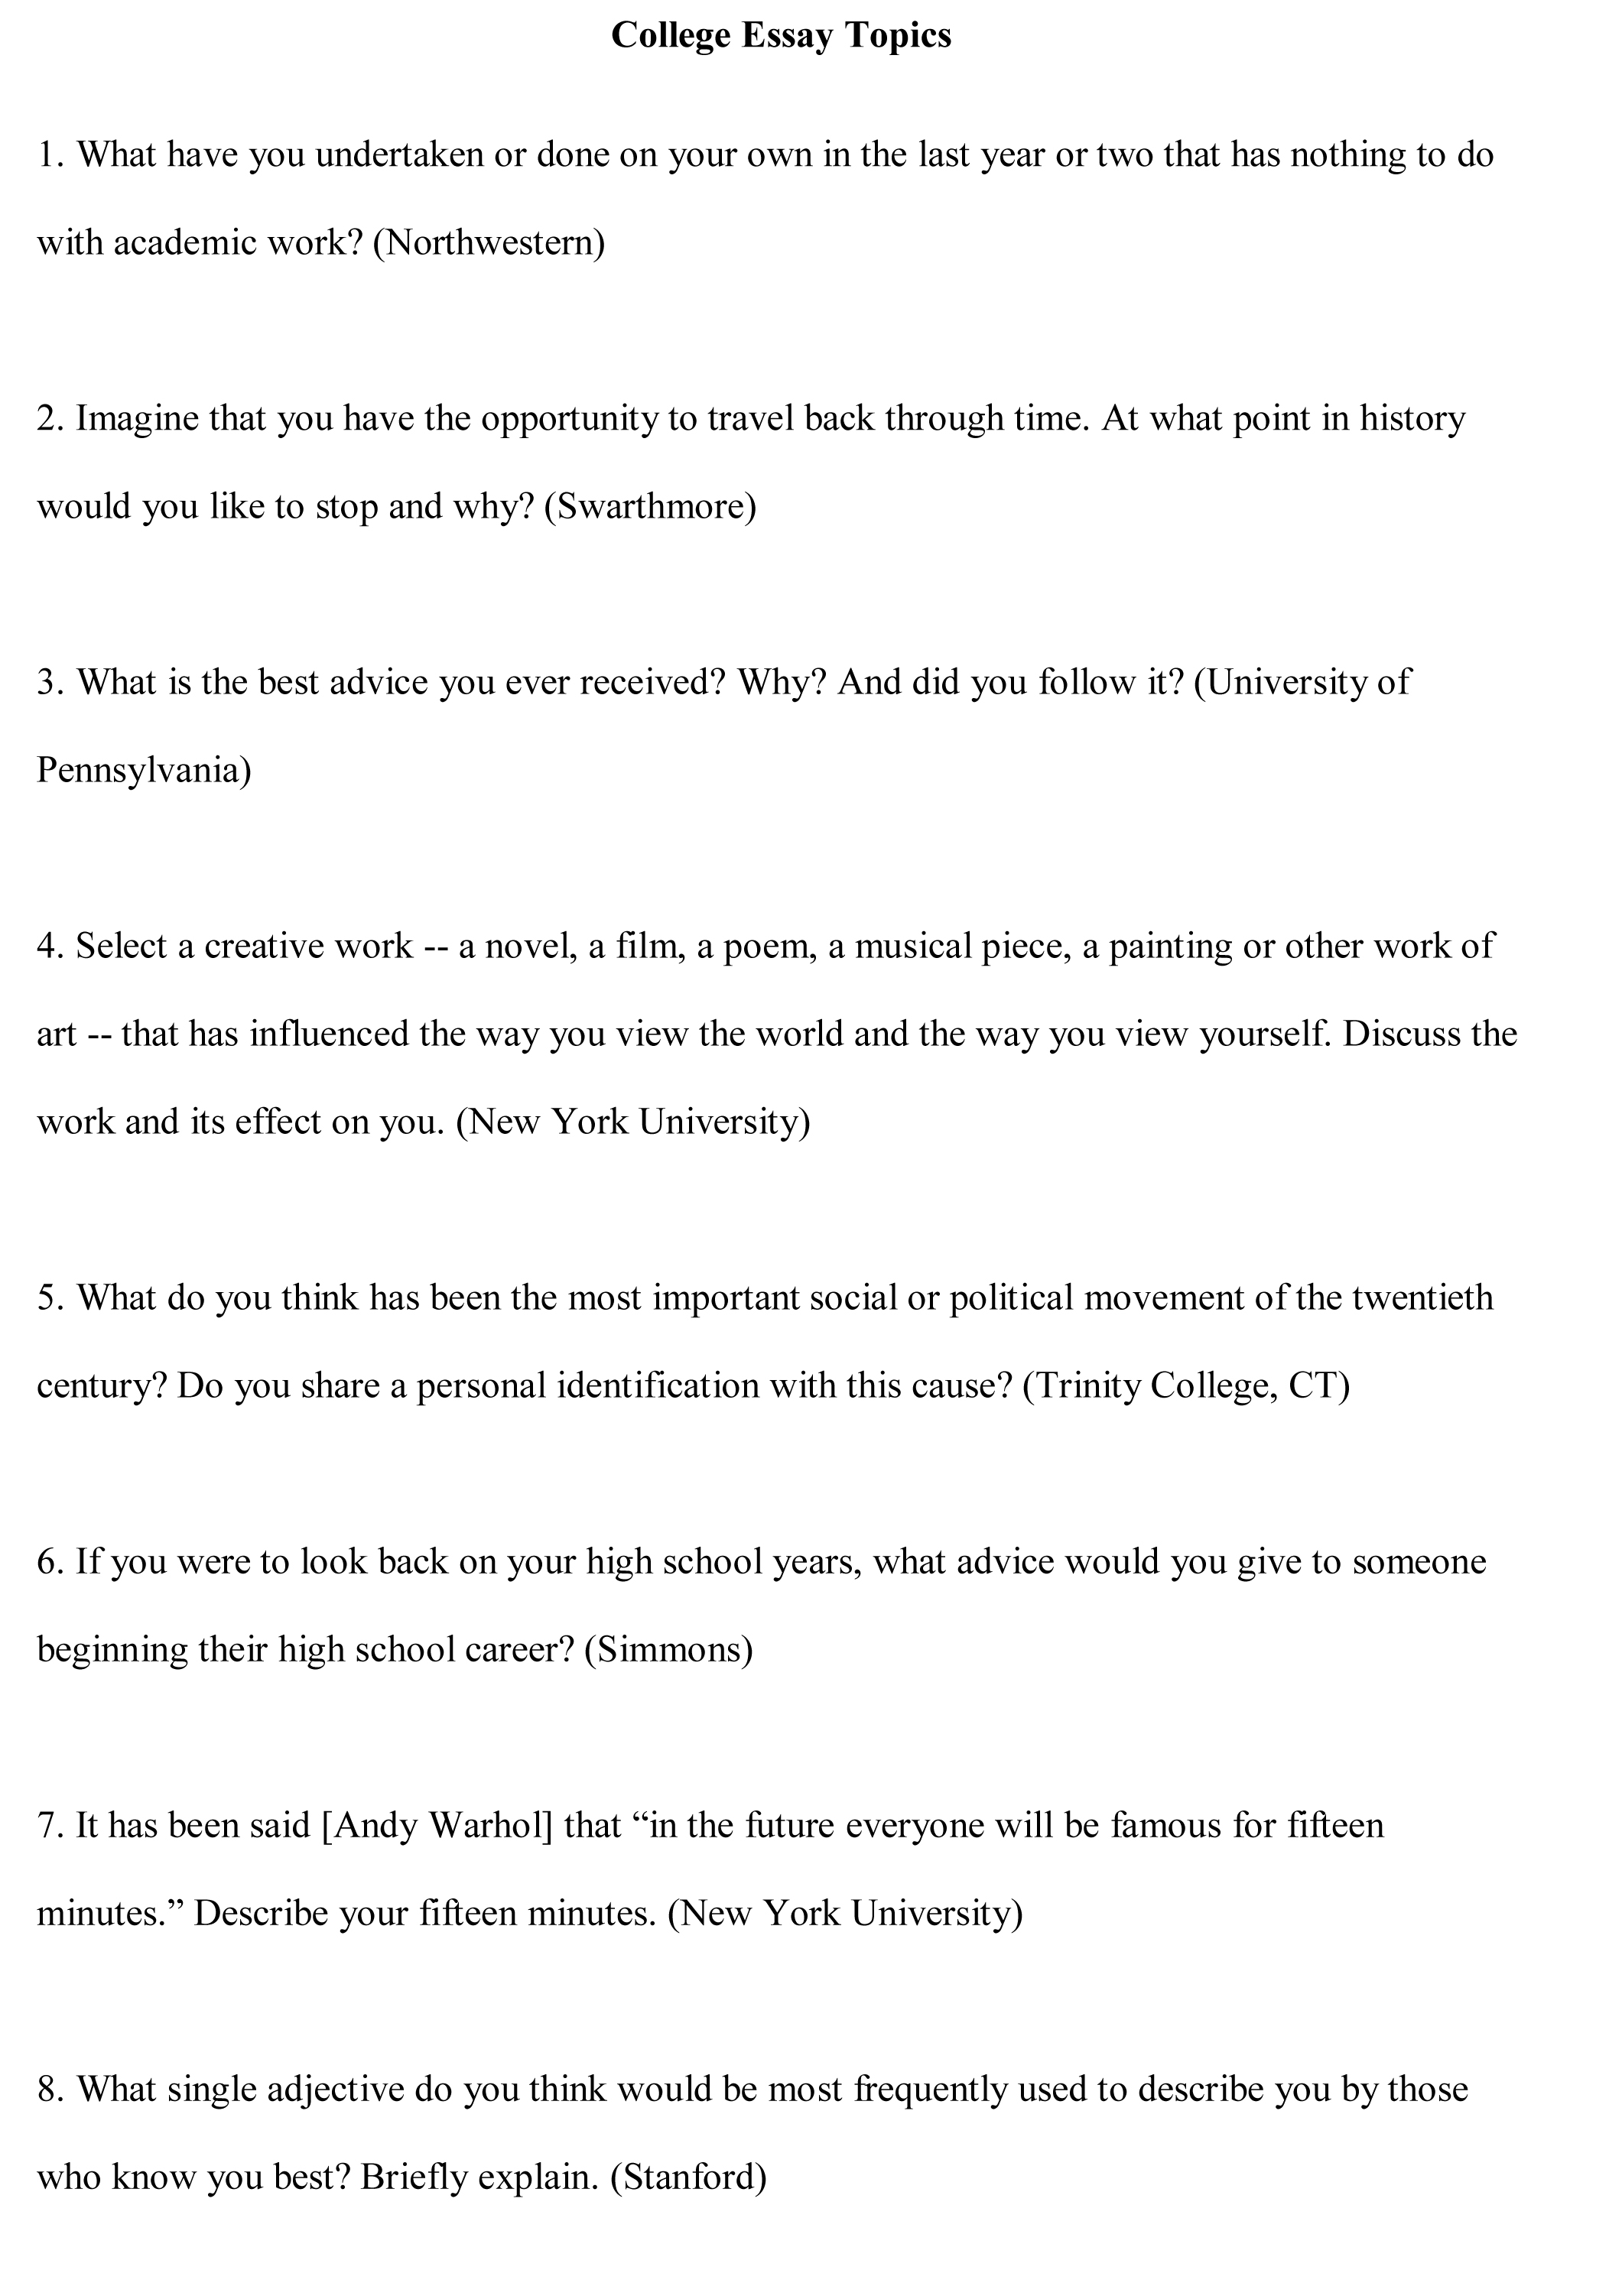 018 Essay Example College Topics Free Sample1 Writing Archaicawful Jobs Uk In Kenya Full